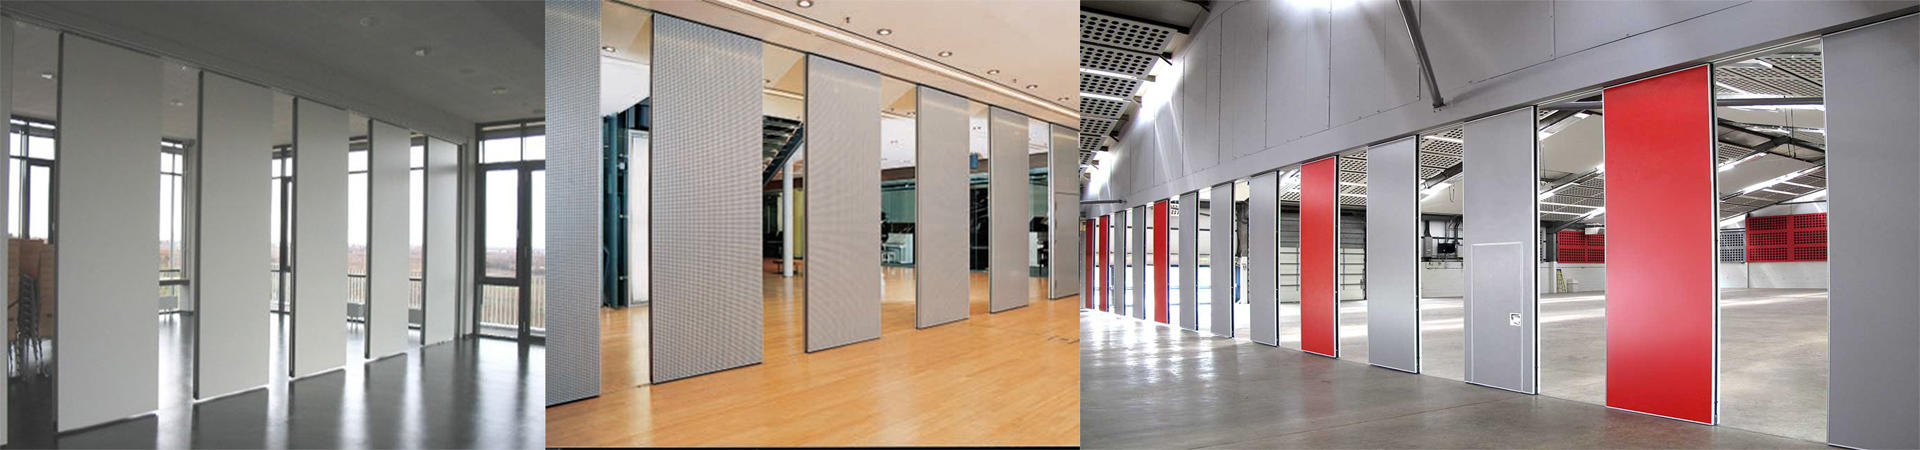 Banquet Hall Foldable Room Partition Panels Acoustic Sliding Partition Walls-movable wall, folding partition,operalbe wall-EBUNGE